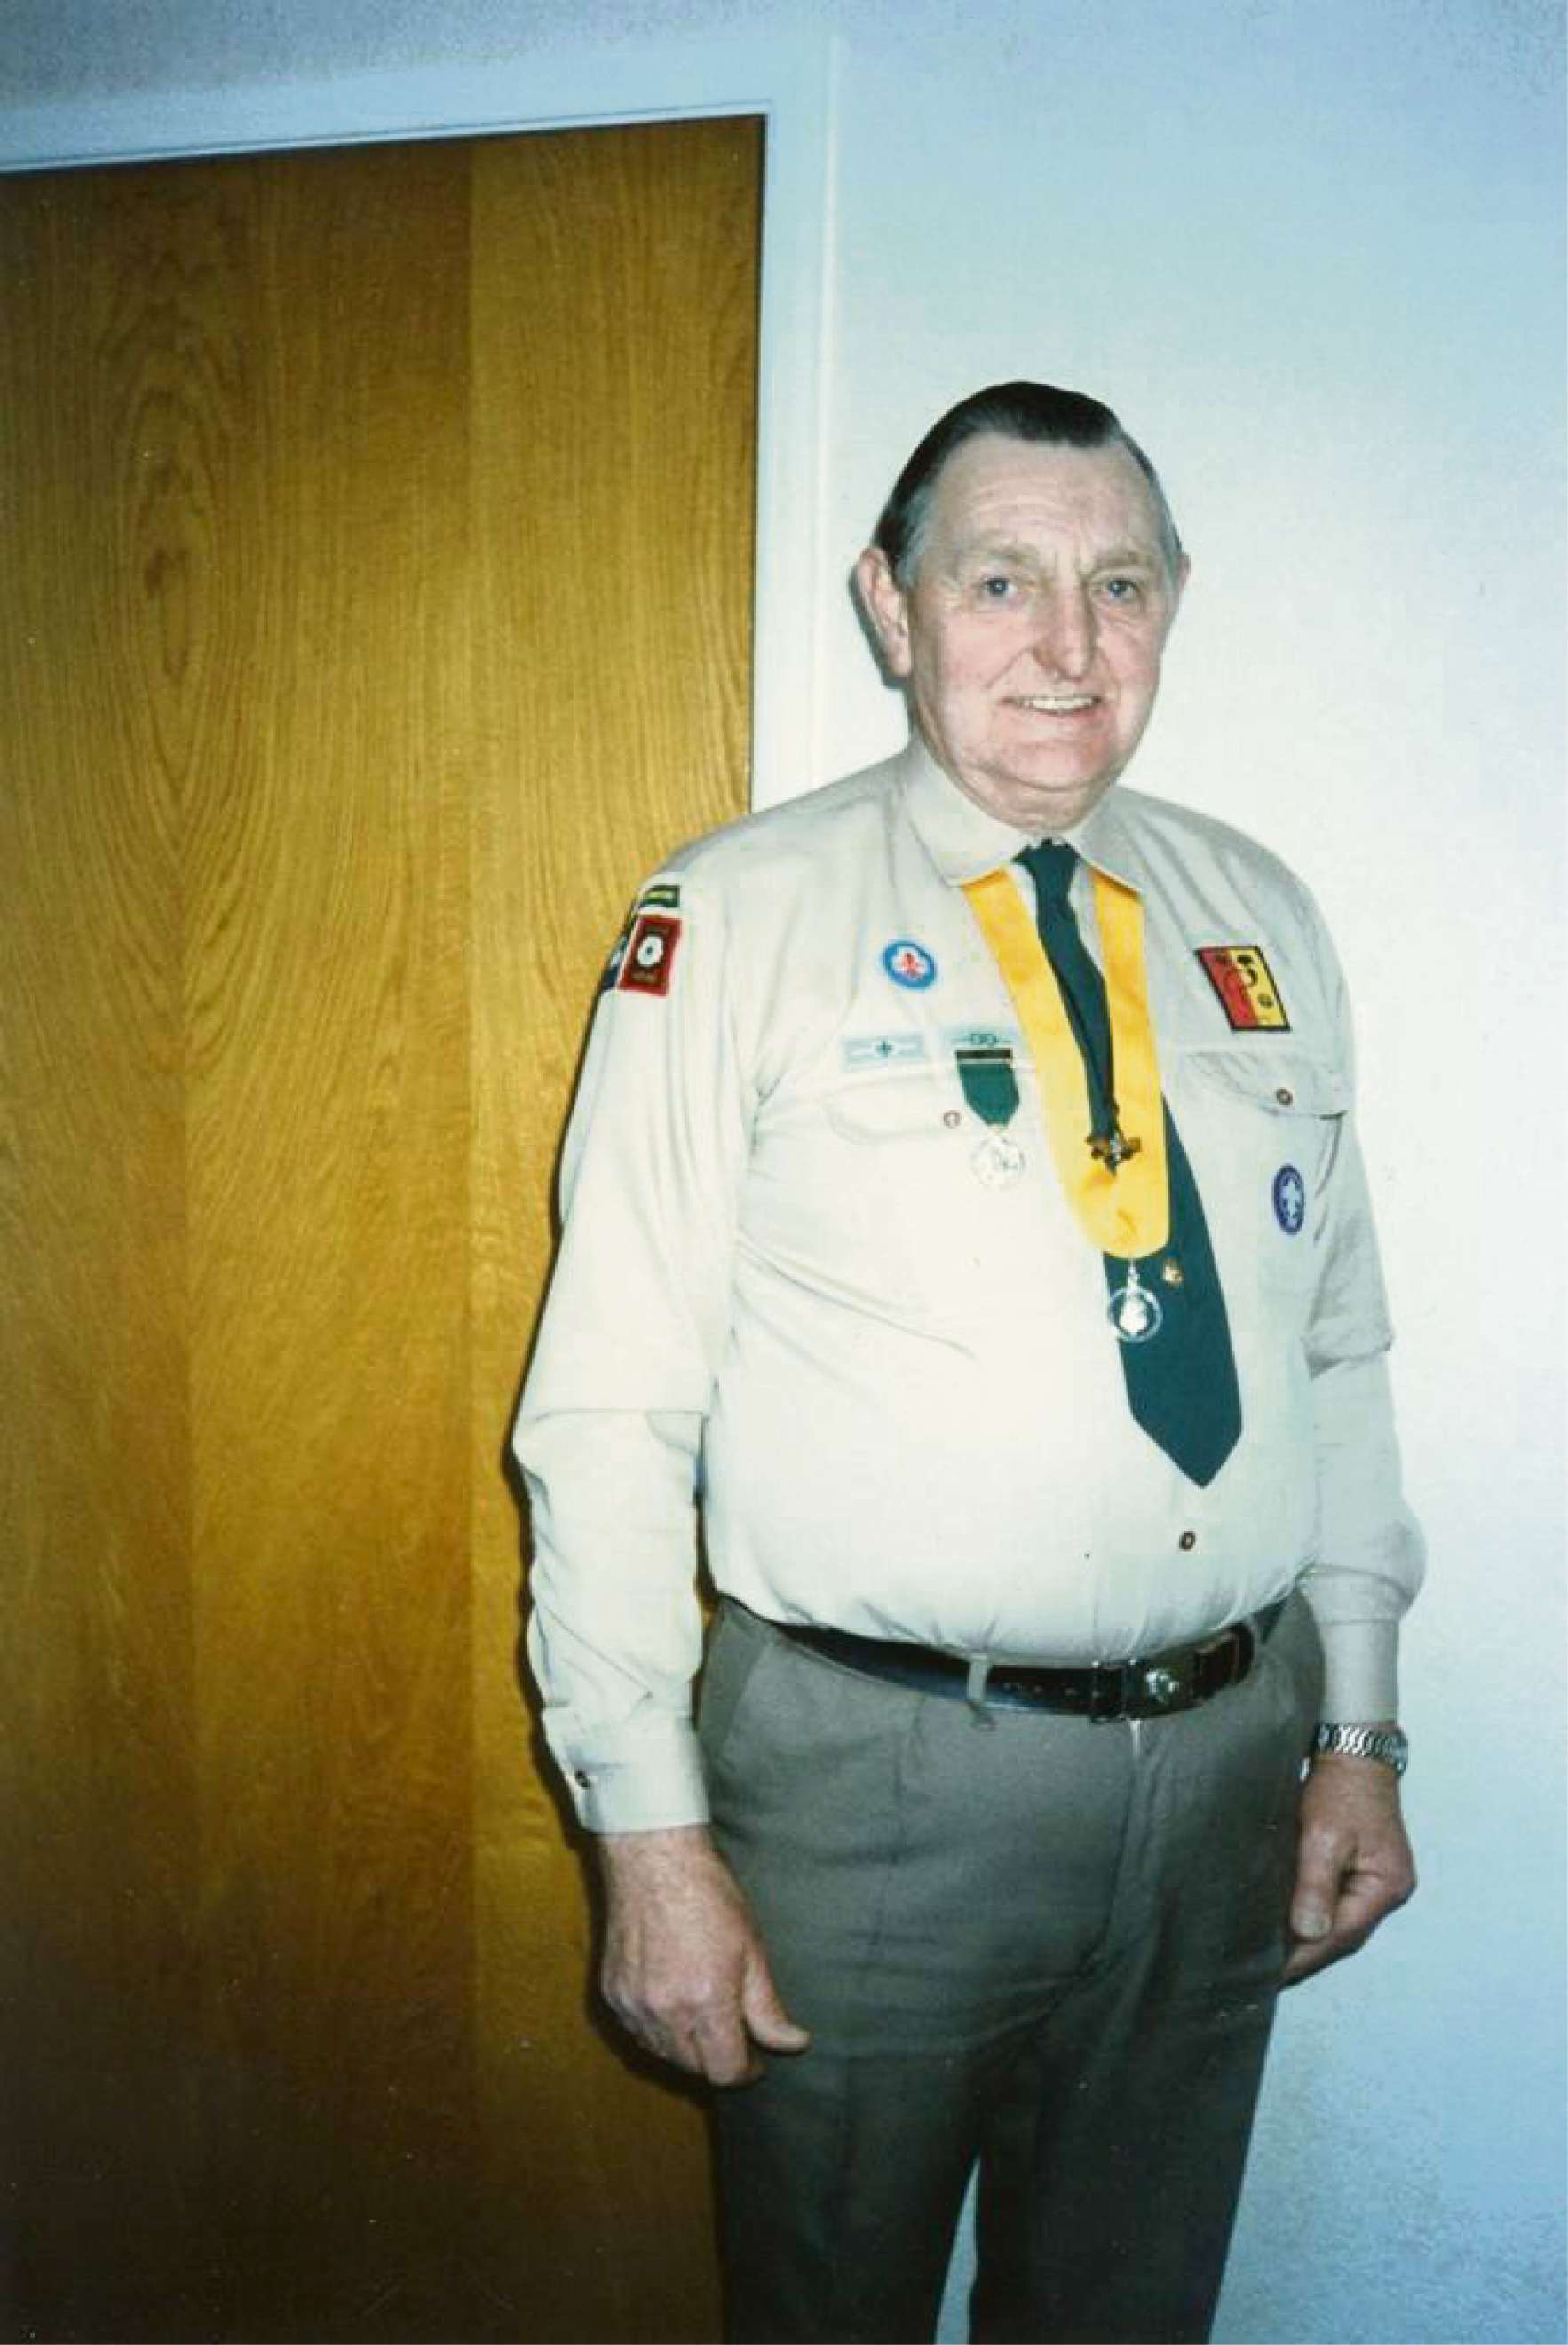 Scout leader Tom Hillbeck who has died, aged 84